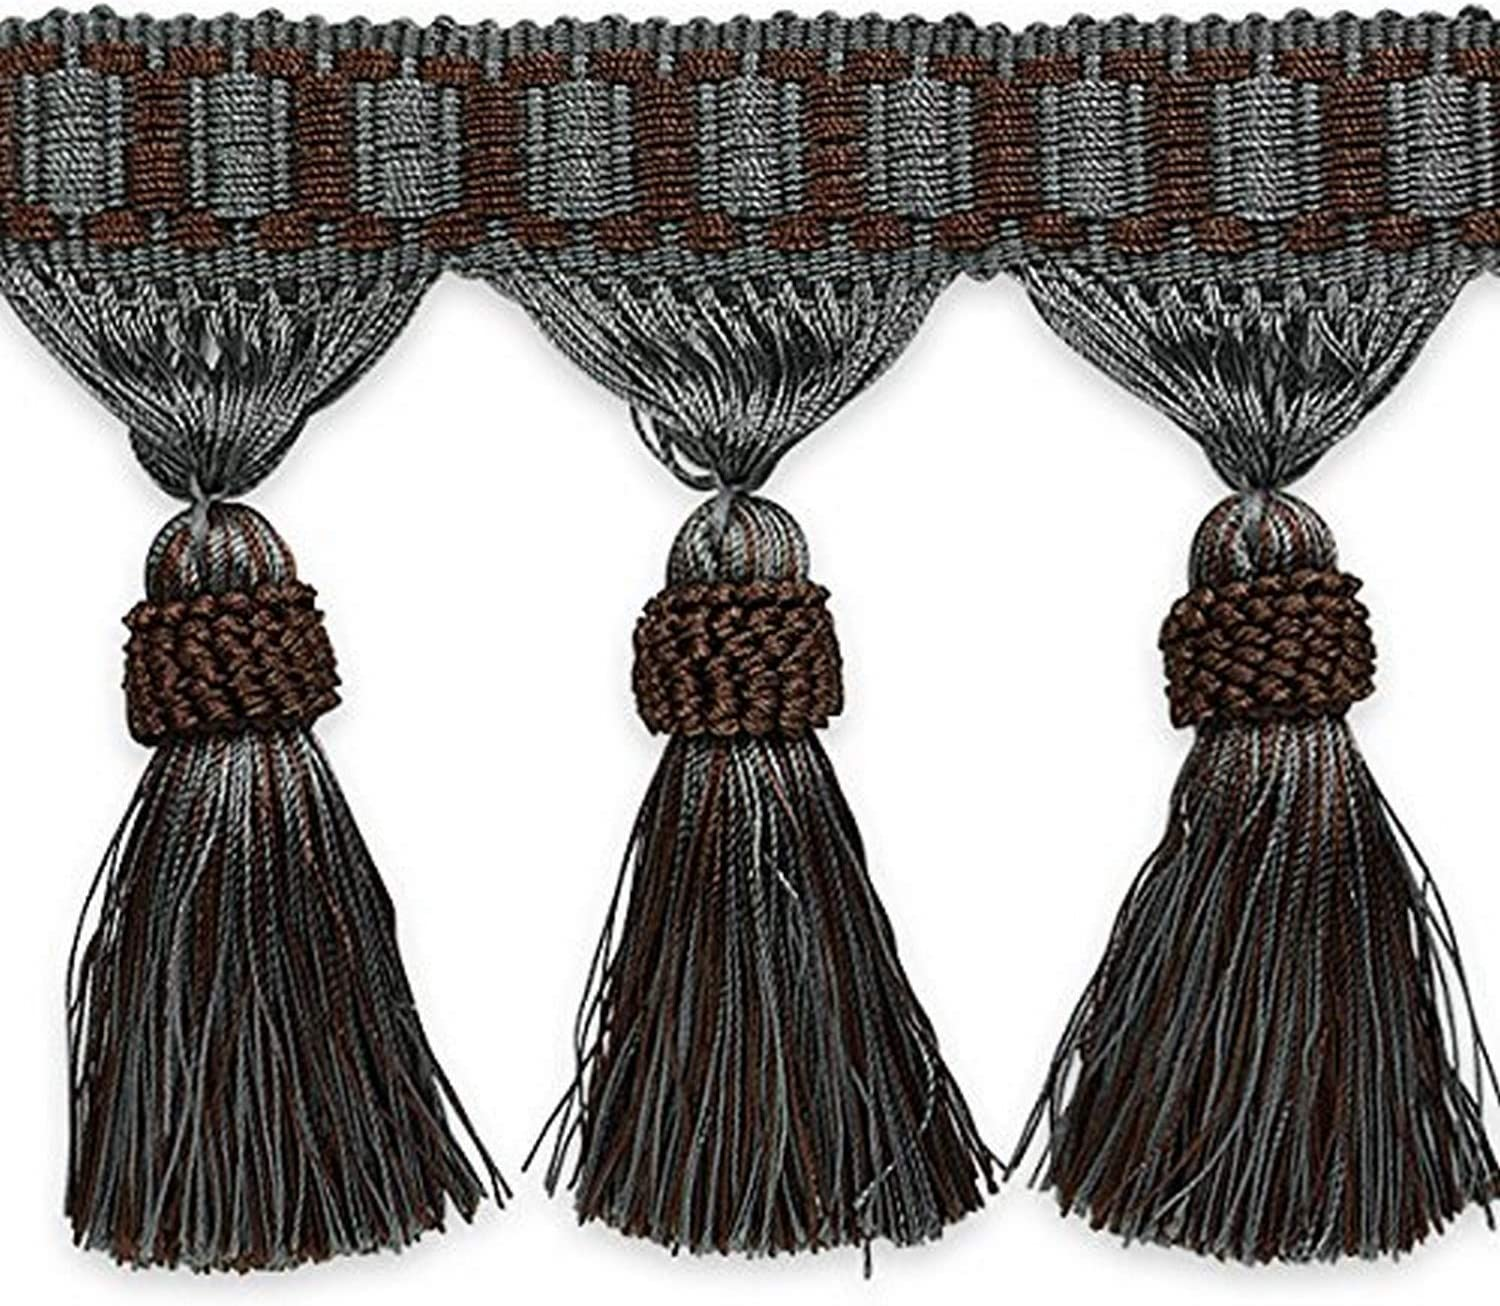 Expo International In a popularity Tassel Fringe Beauty products Trim Multicolor 10 yd Pewter